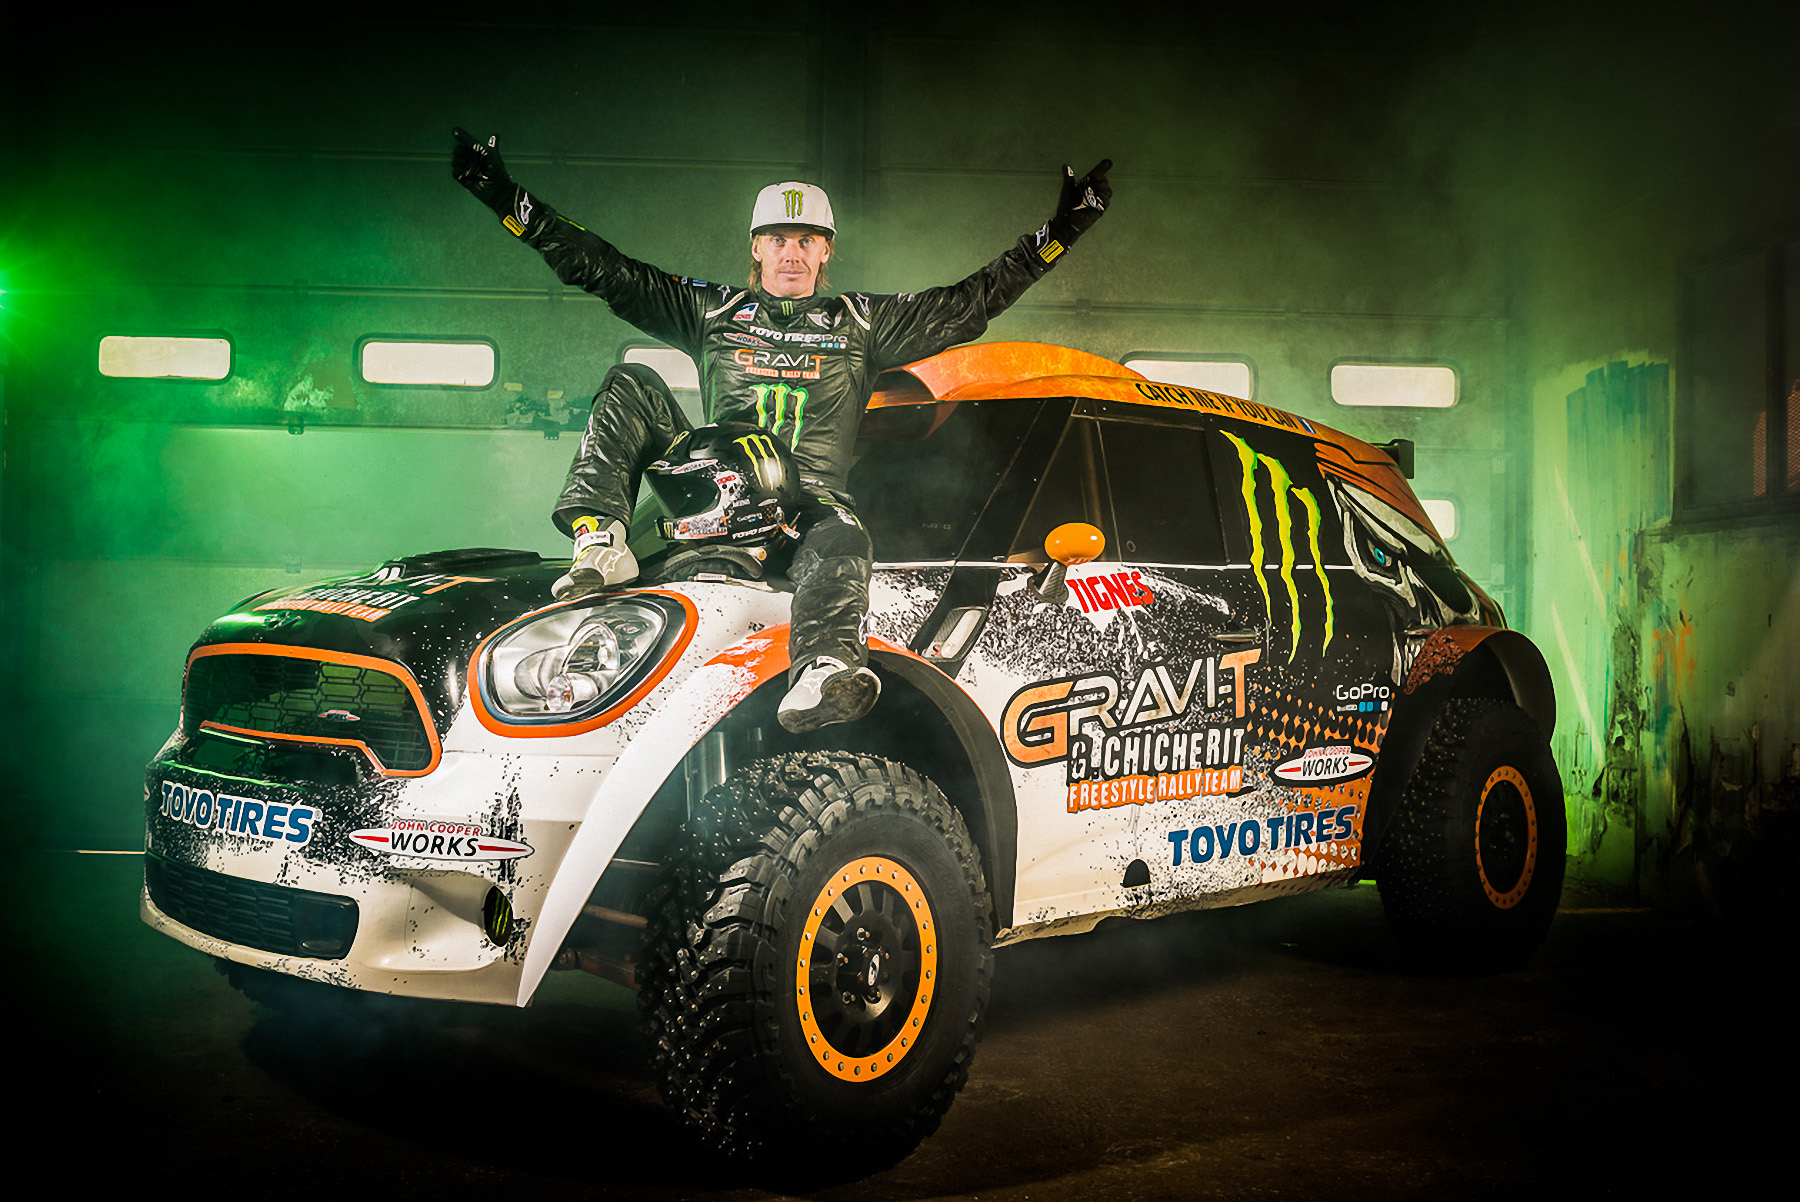 MINI and Chicherit to Break World Record for Longest Car Jump on ...